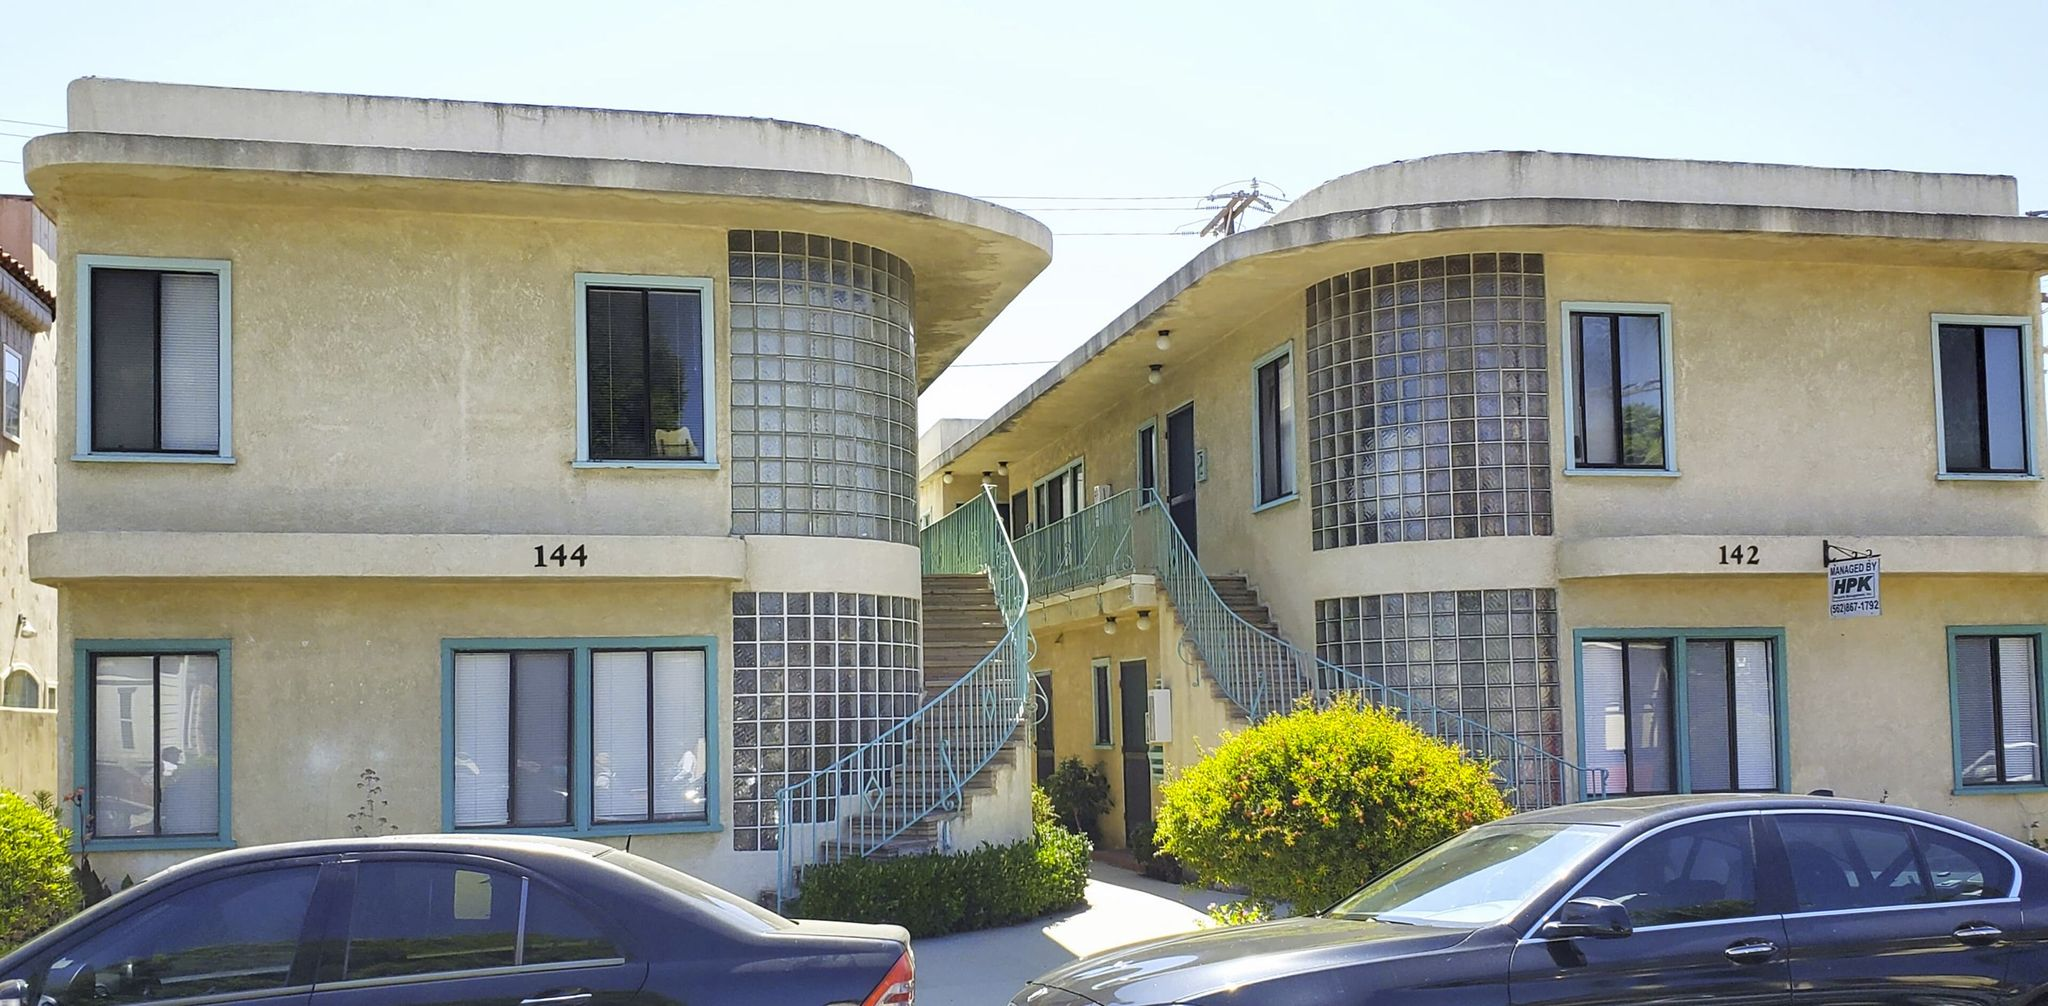 Apartments 142-144 Claremont Ave in LB